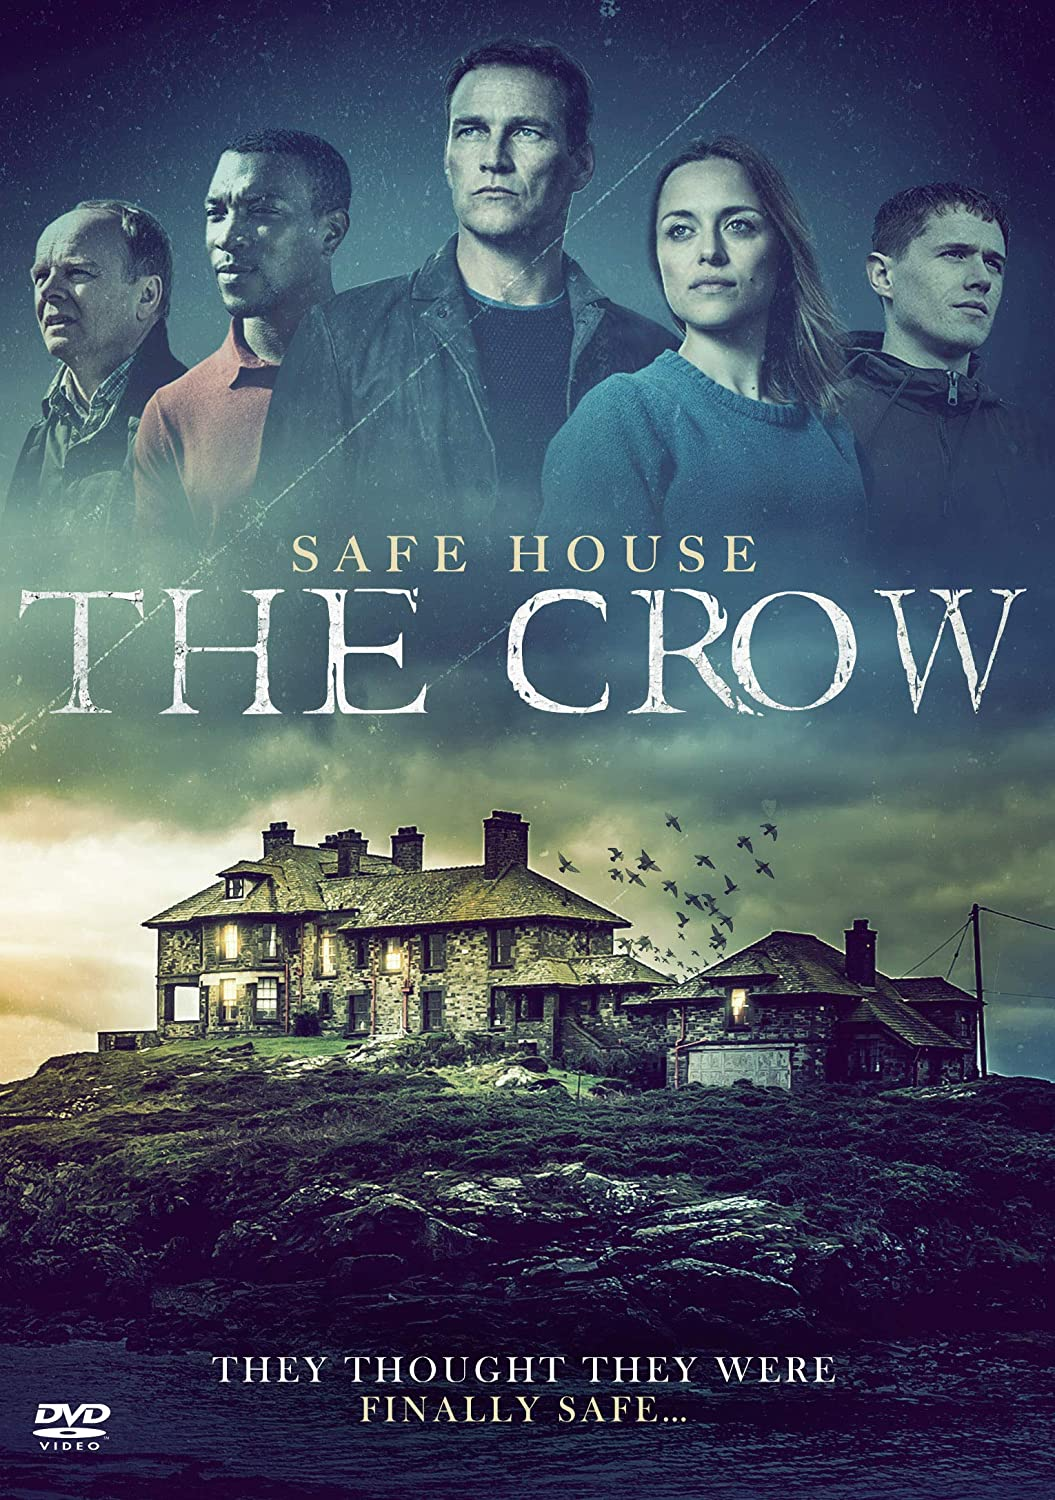 Safe House: The Crow